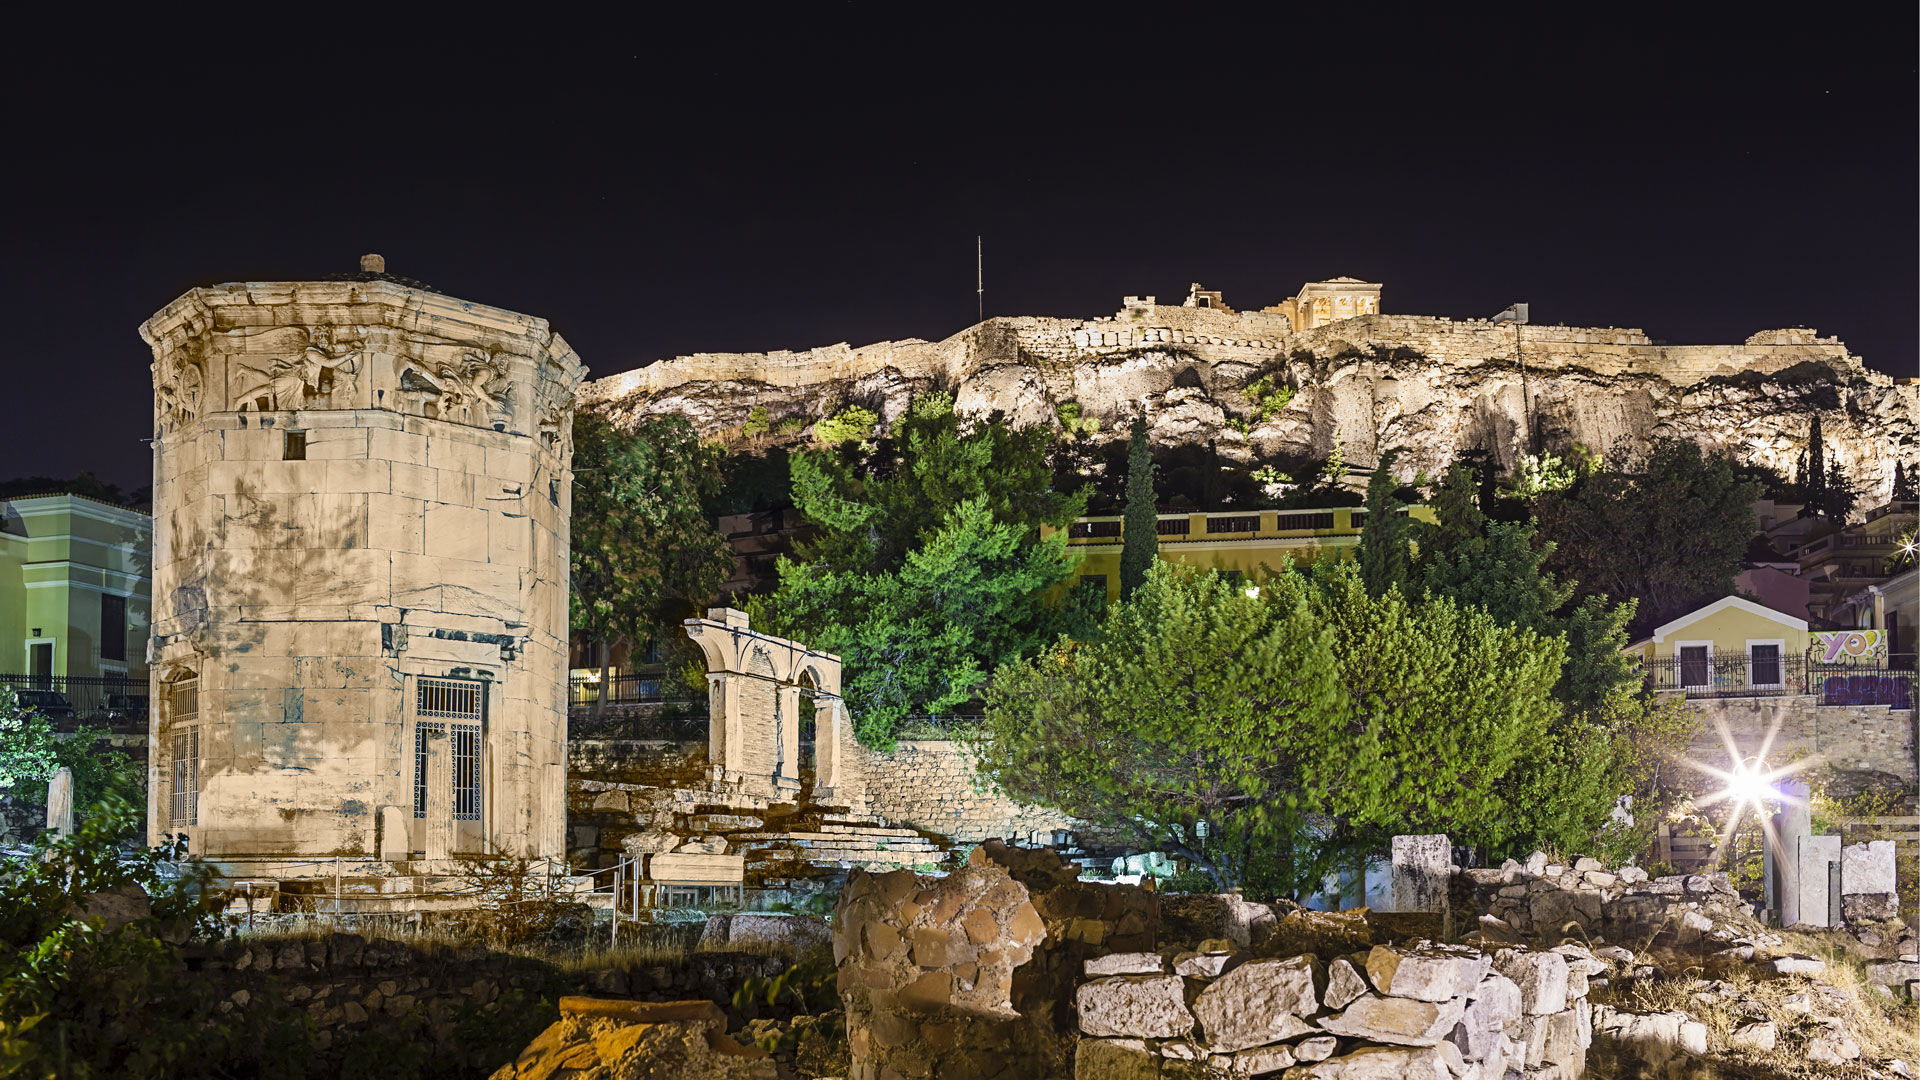 View of the Roman Agora and the Acropolis